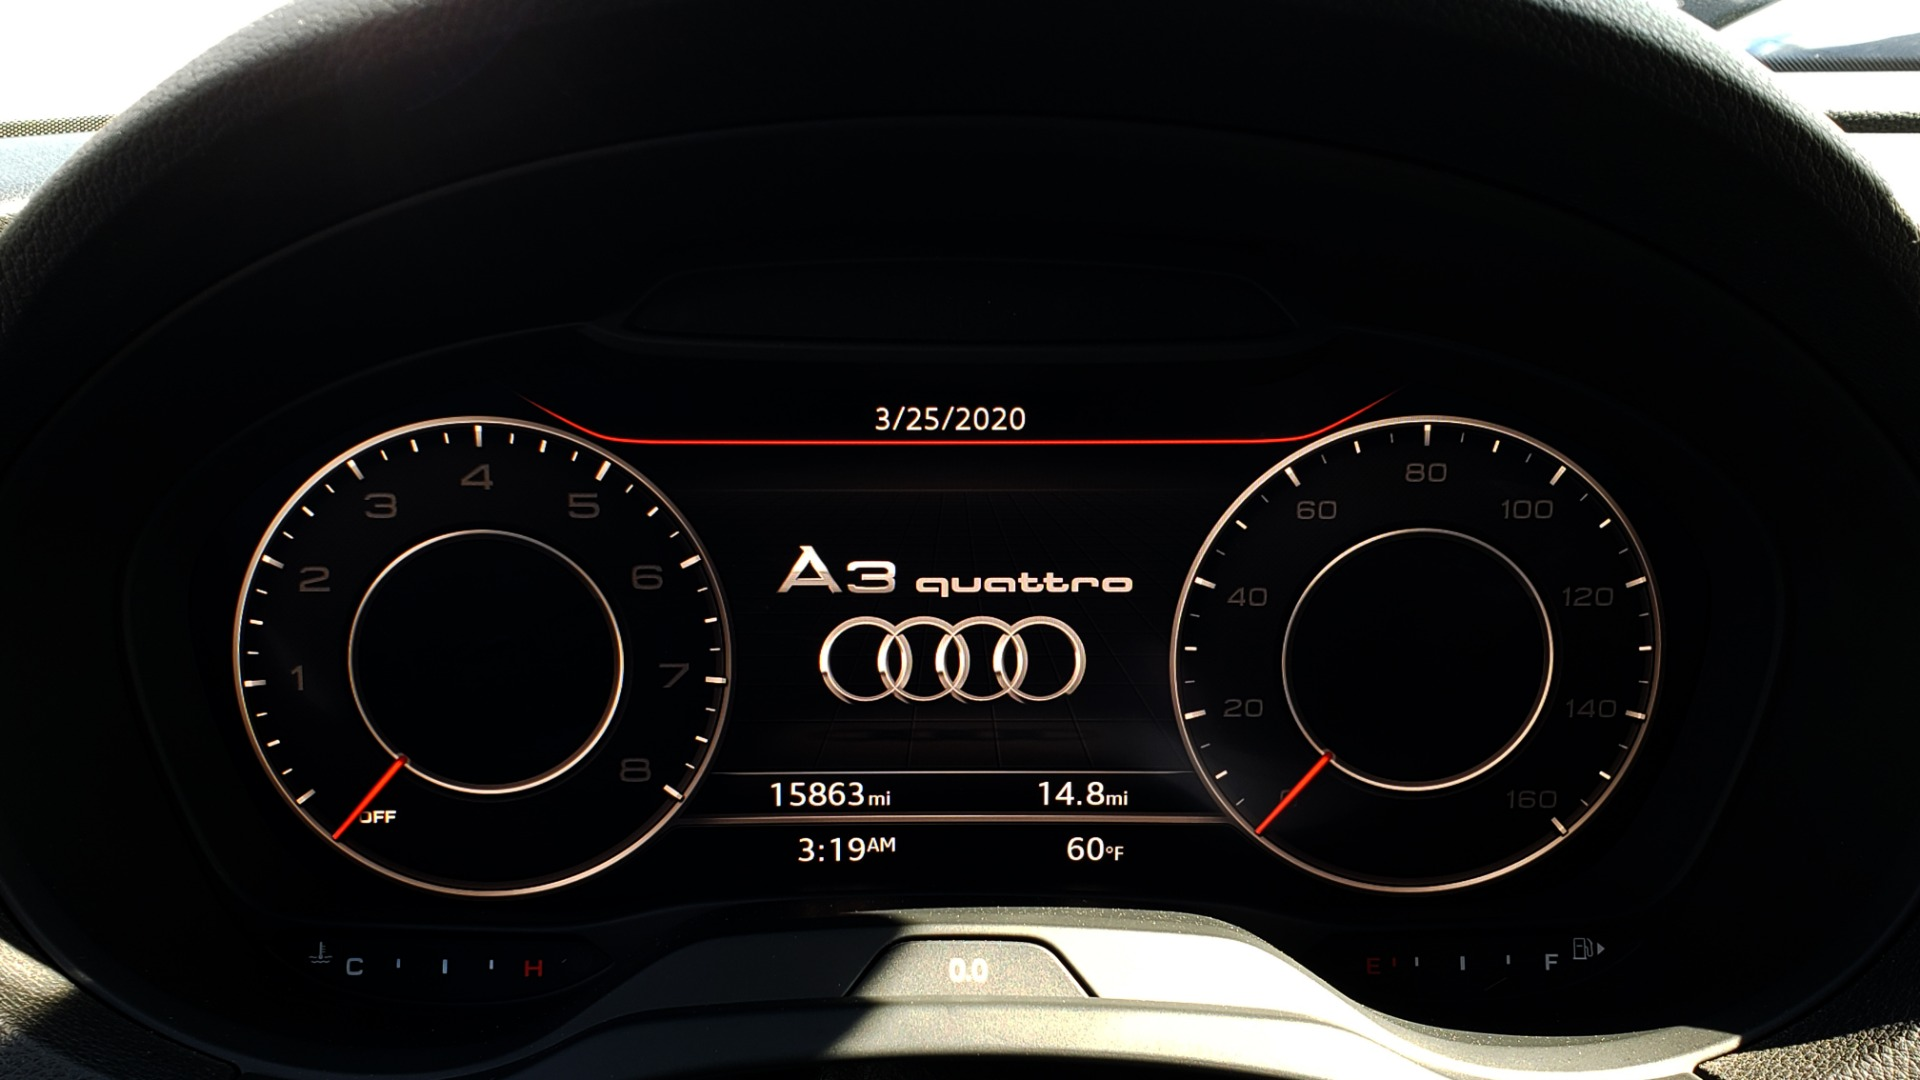 Used 2017 Audi A3 SEDAN PREMIUM PLUS / S-TRONIC / NAV / TECH / SUNROOF / REARVIEW for sale Sold at Formula Imports in Charlotte NC 28227 40